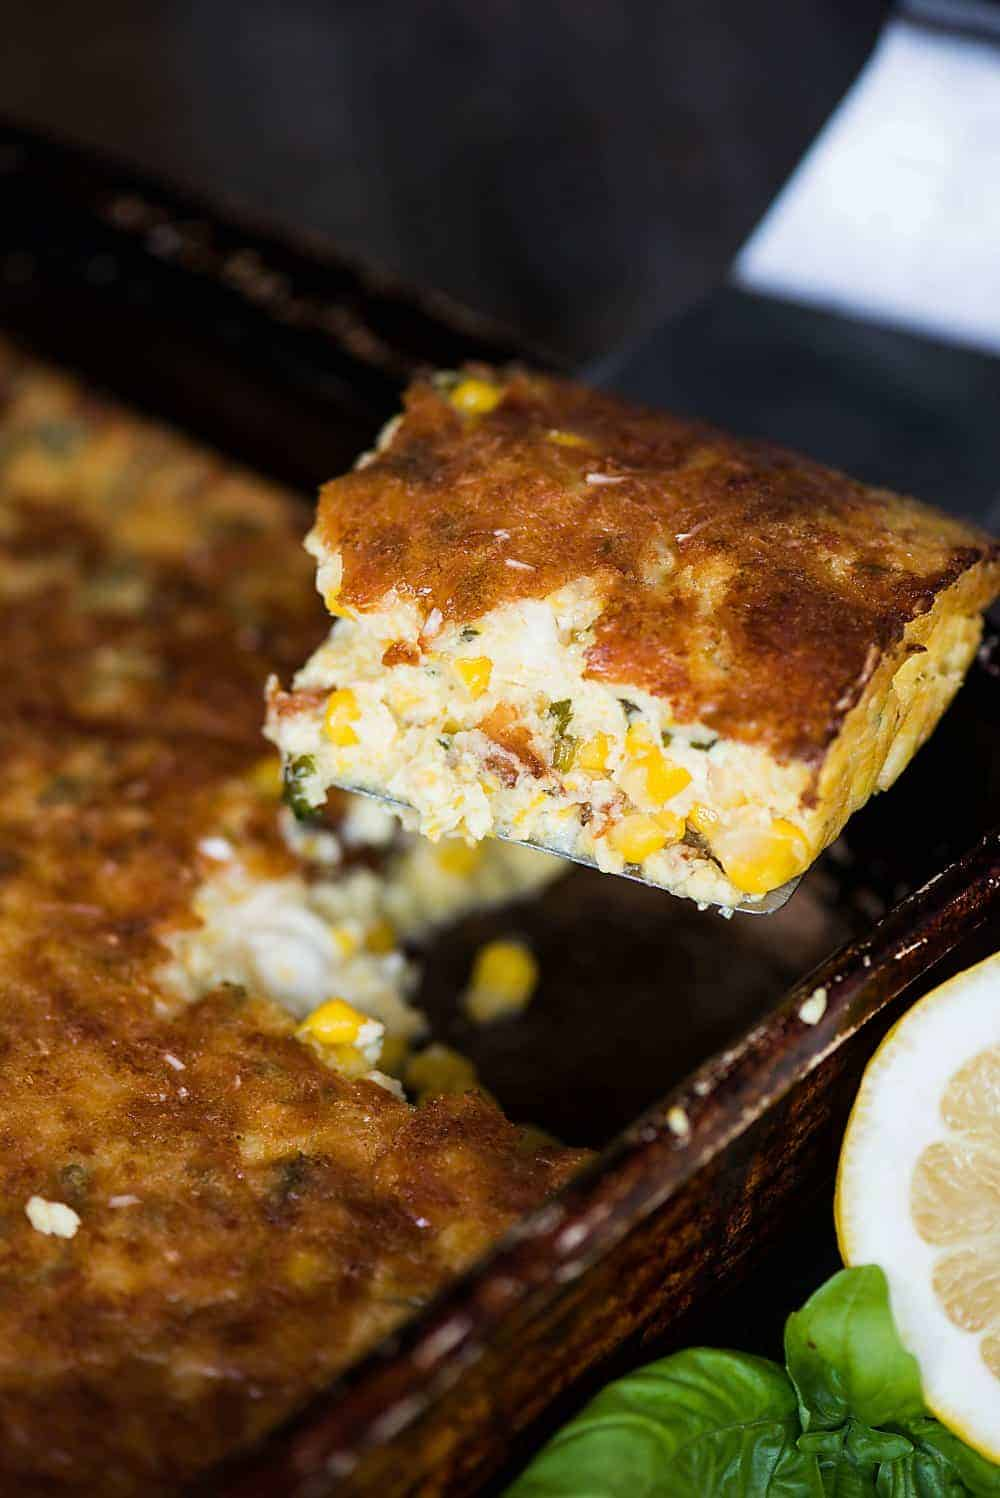 Feta Corn Casserole, made with canned corn and a hint of lemon and basil, takes only minutes to prepare, creating an easy side dish everyone loves.